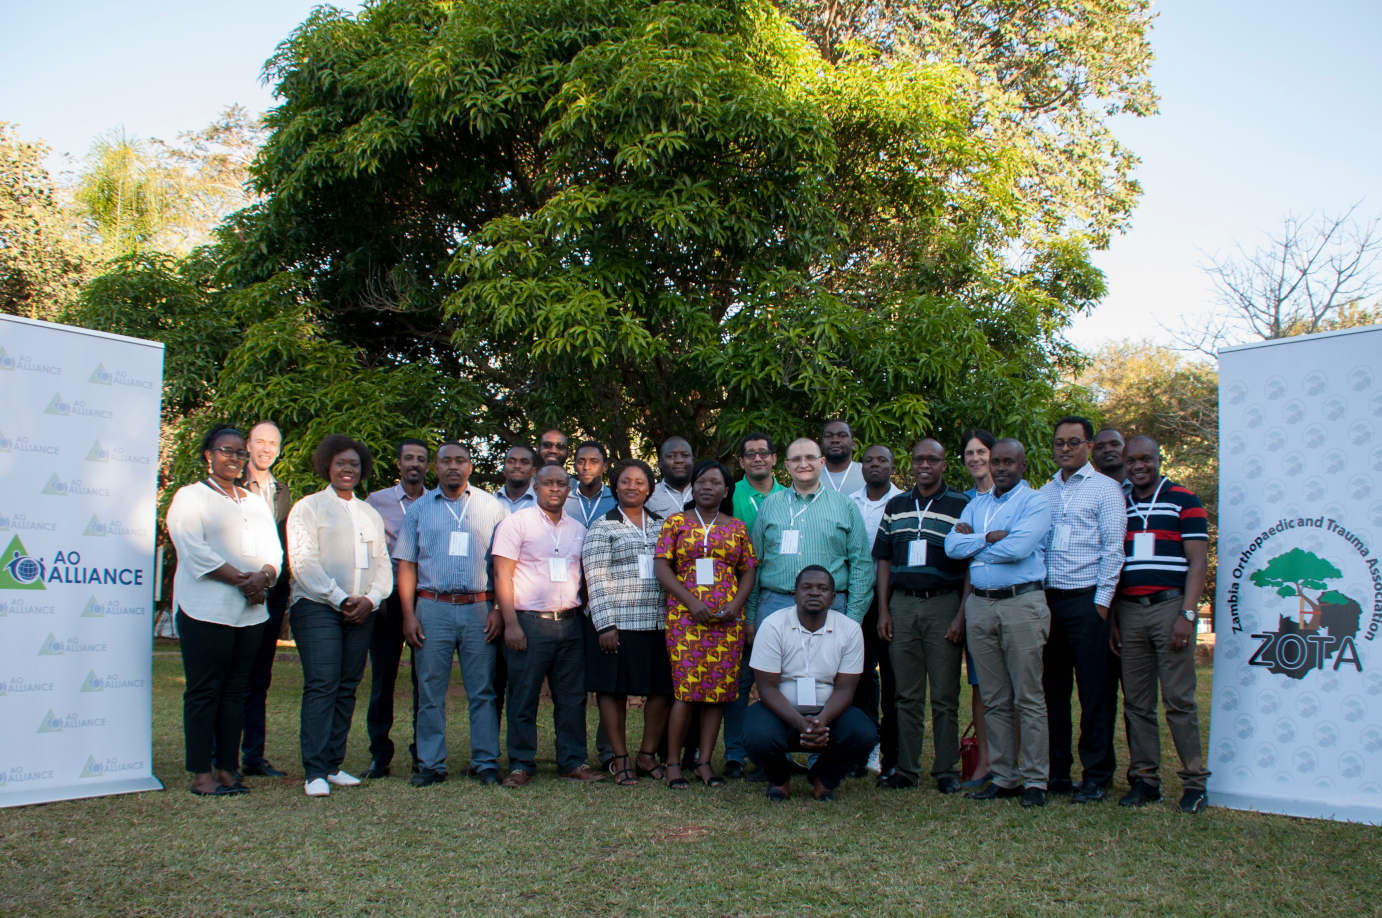 AO Alliance faculty gather in Lusaka to improve their teaching skills